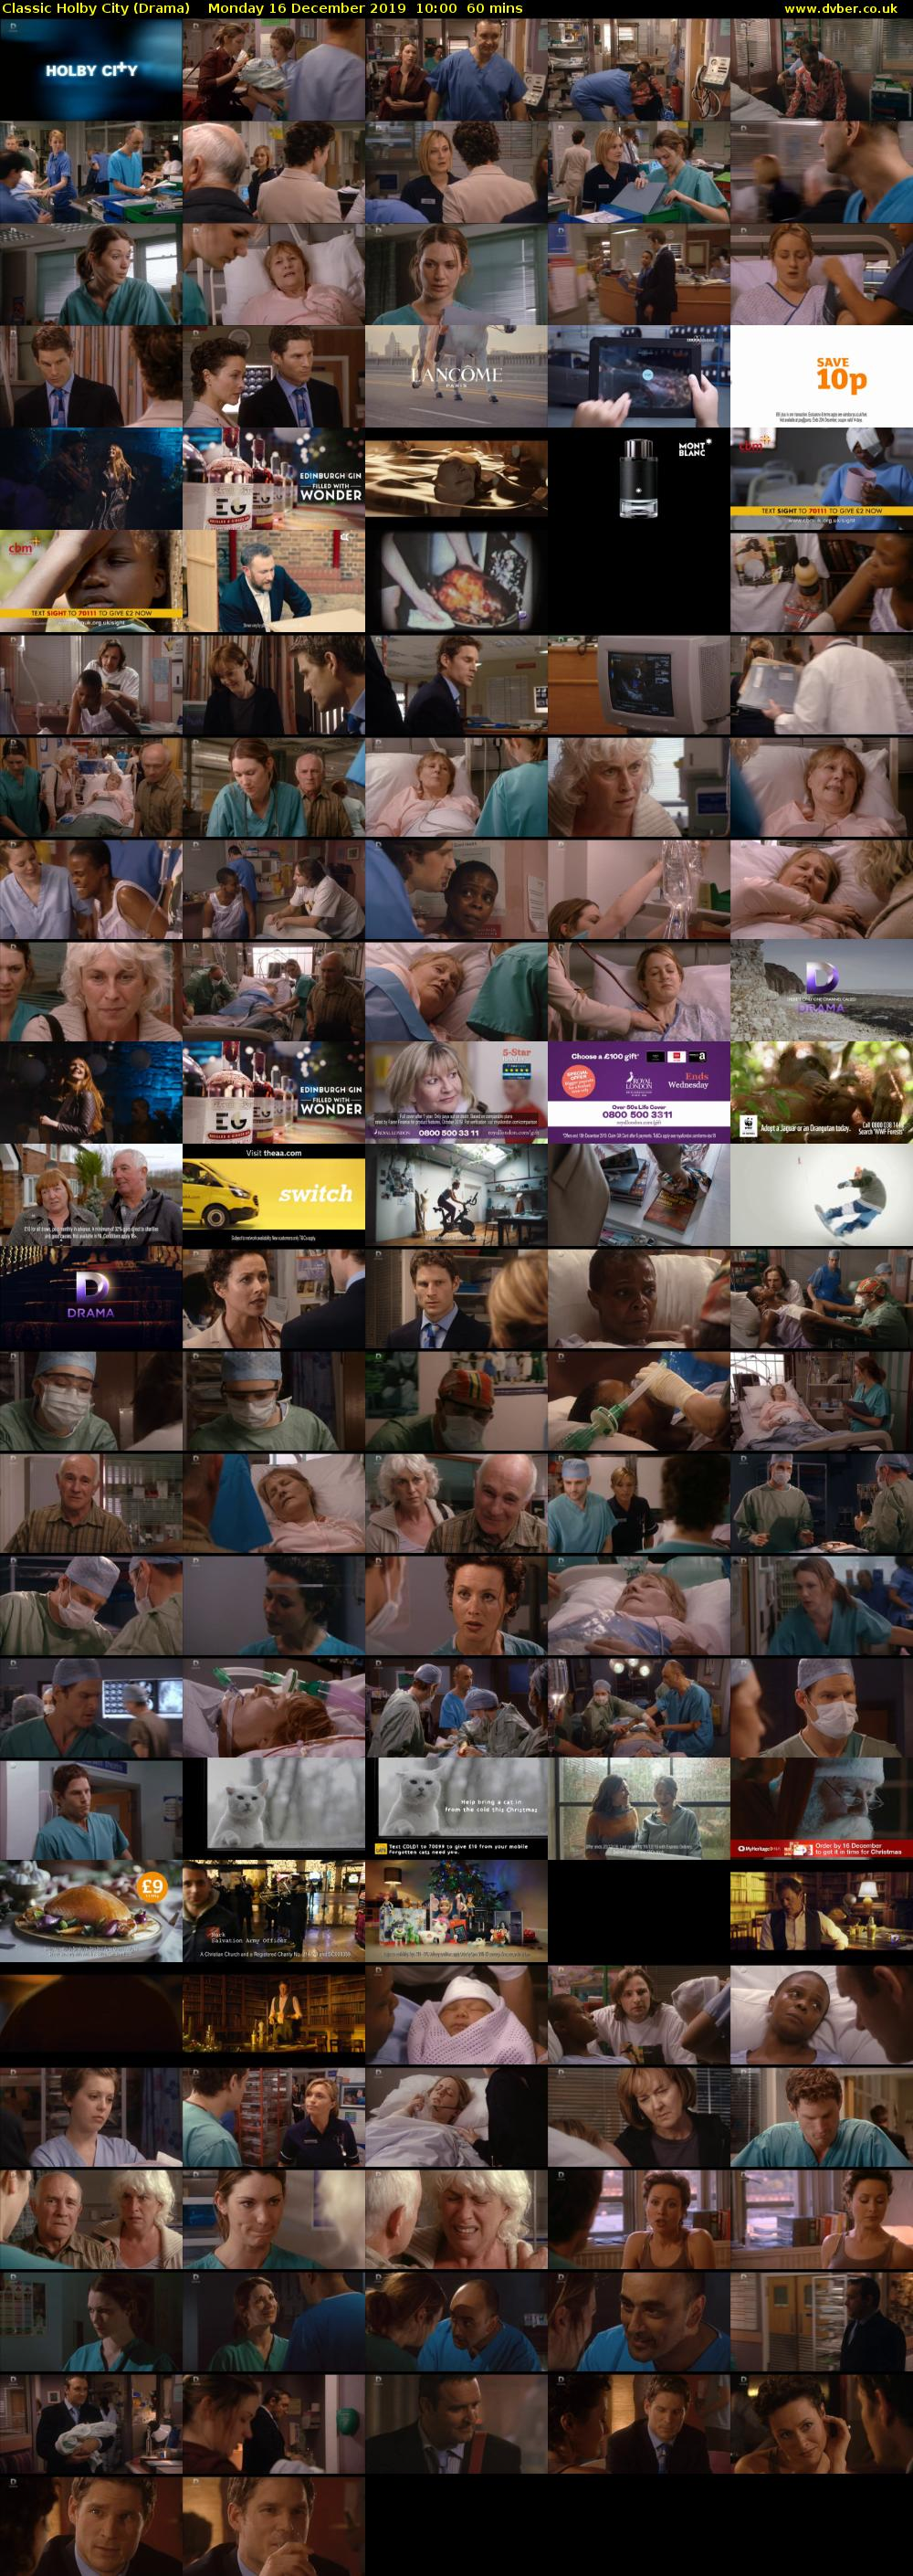 Classic Holby City (Drama) Monday 16 December 2019 10:00 - 11:00